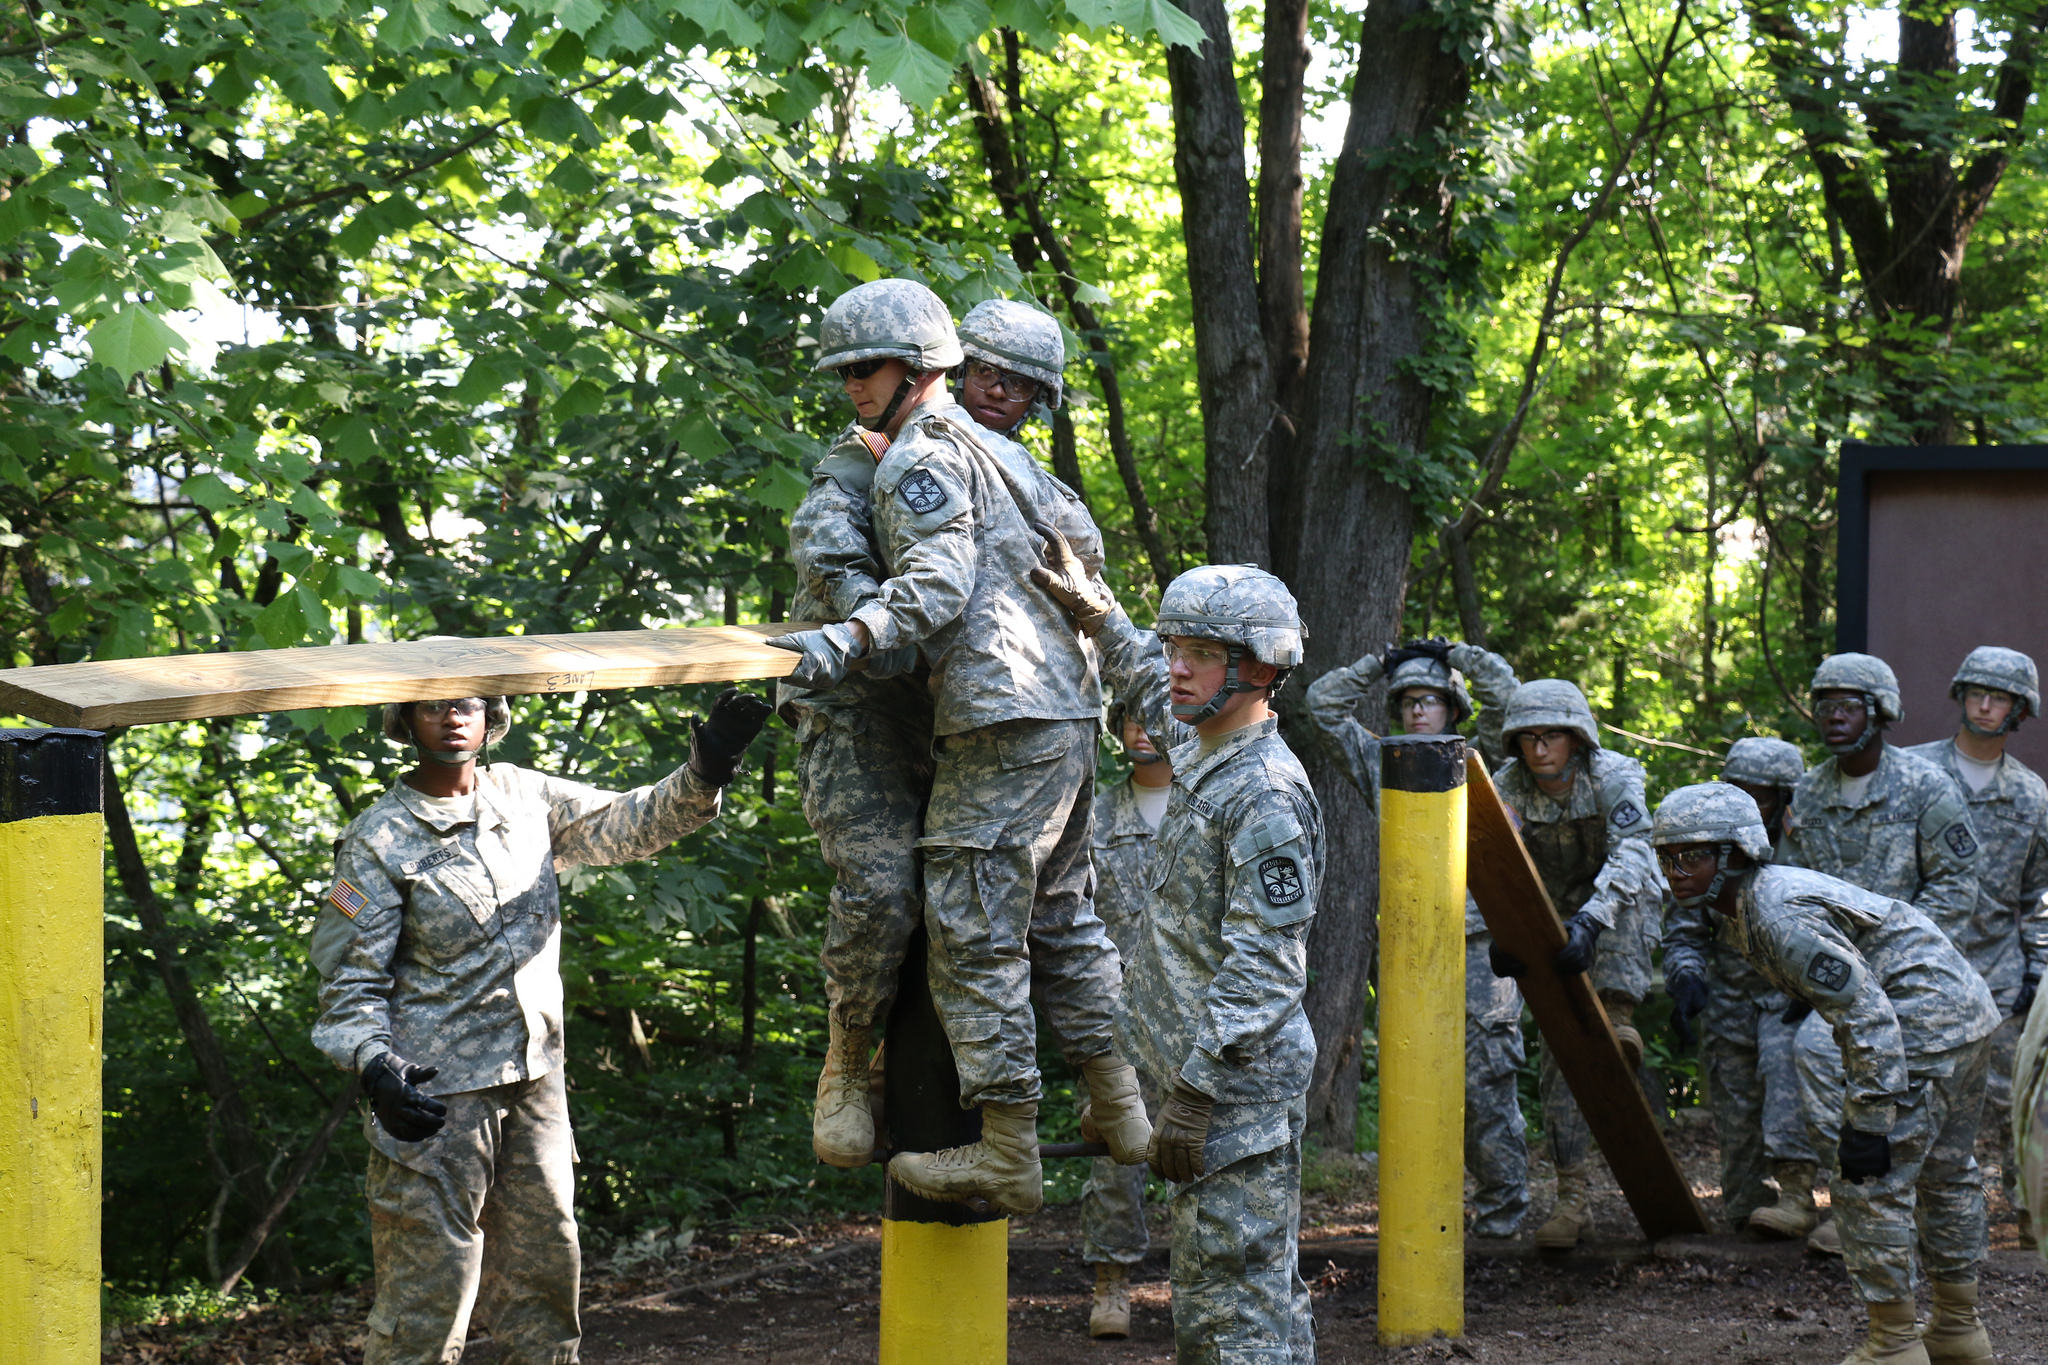 3rd Regiment, Basic Camp: Learning the Meaning of Team Work